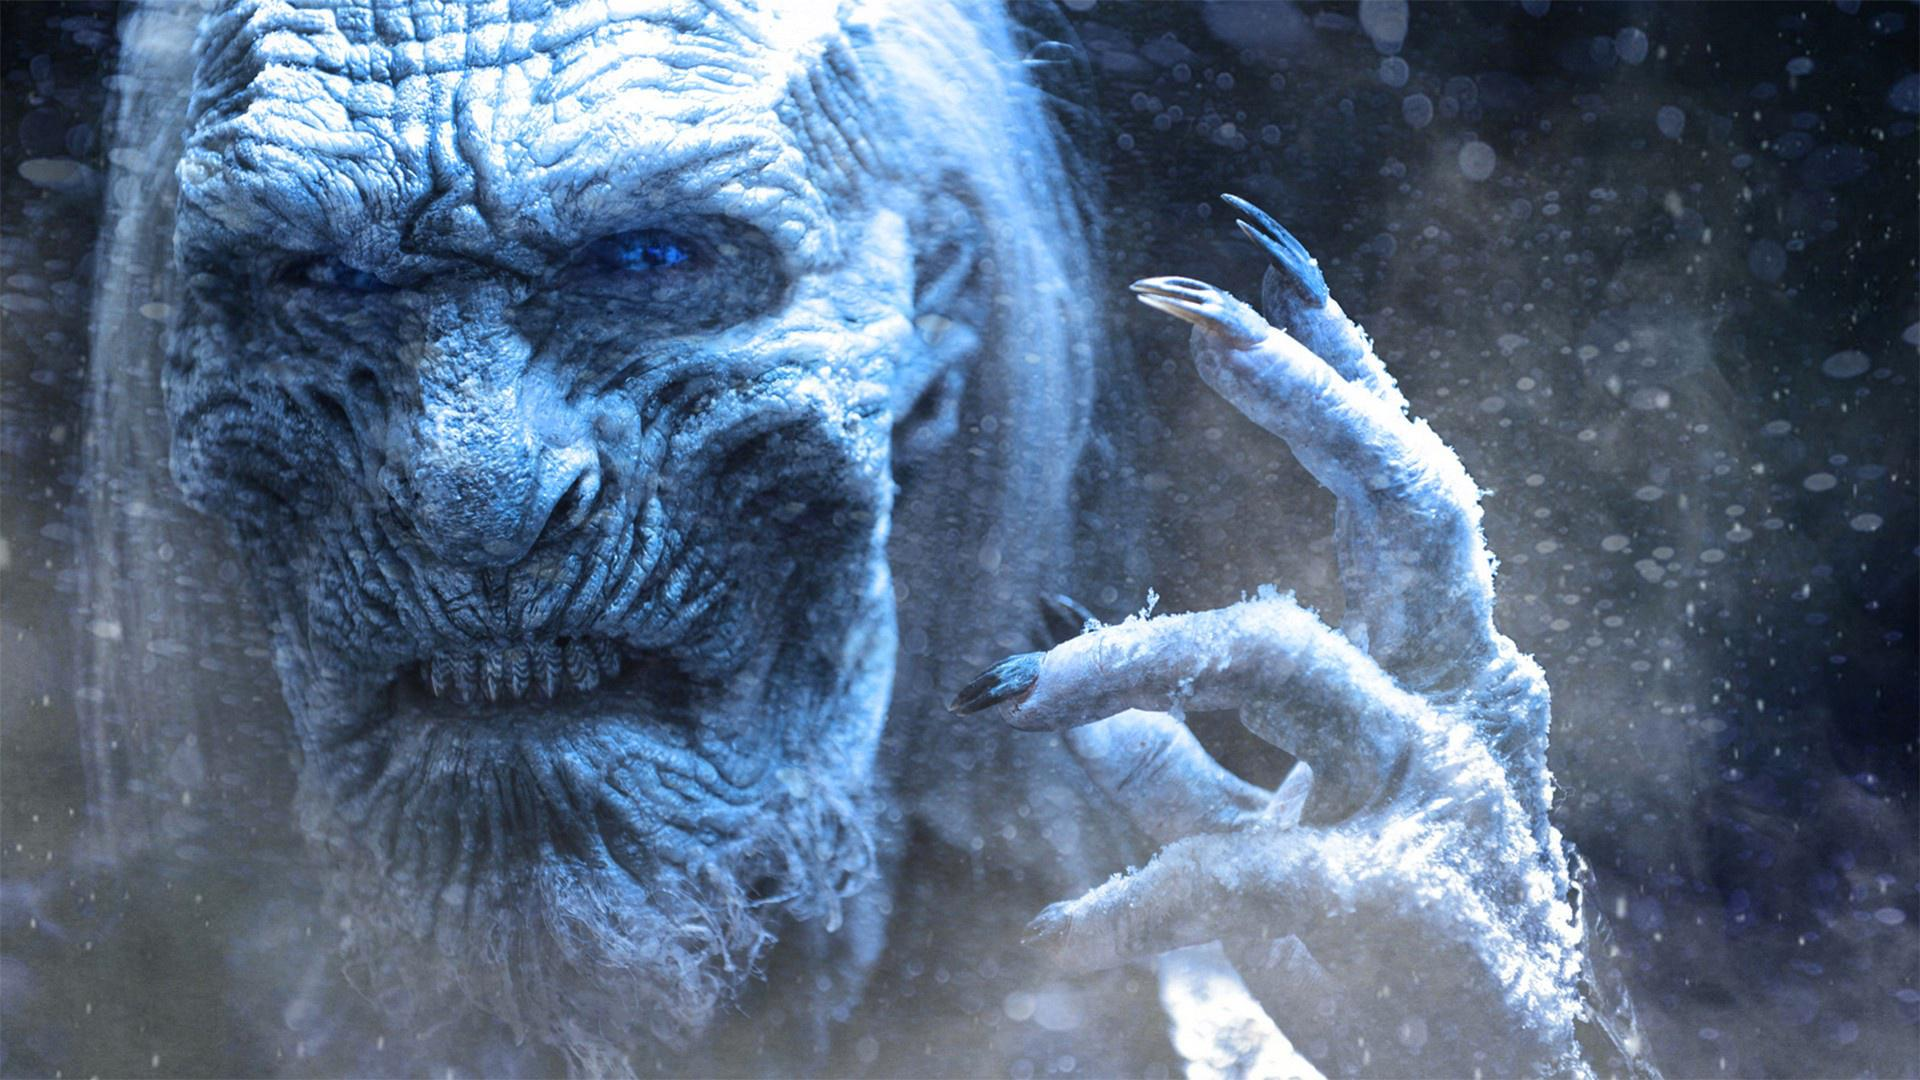 Game of Thrones – whitewalkers Sinhala Review